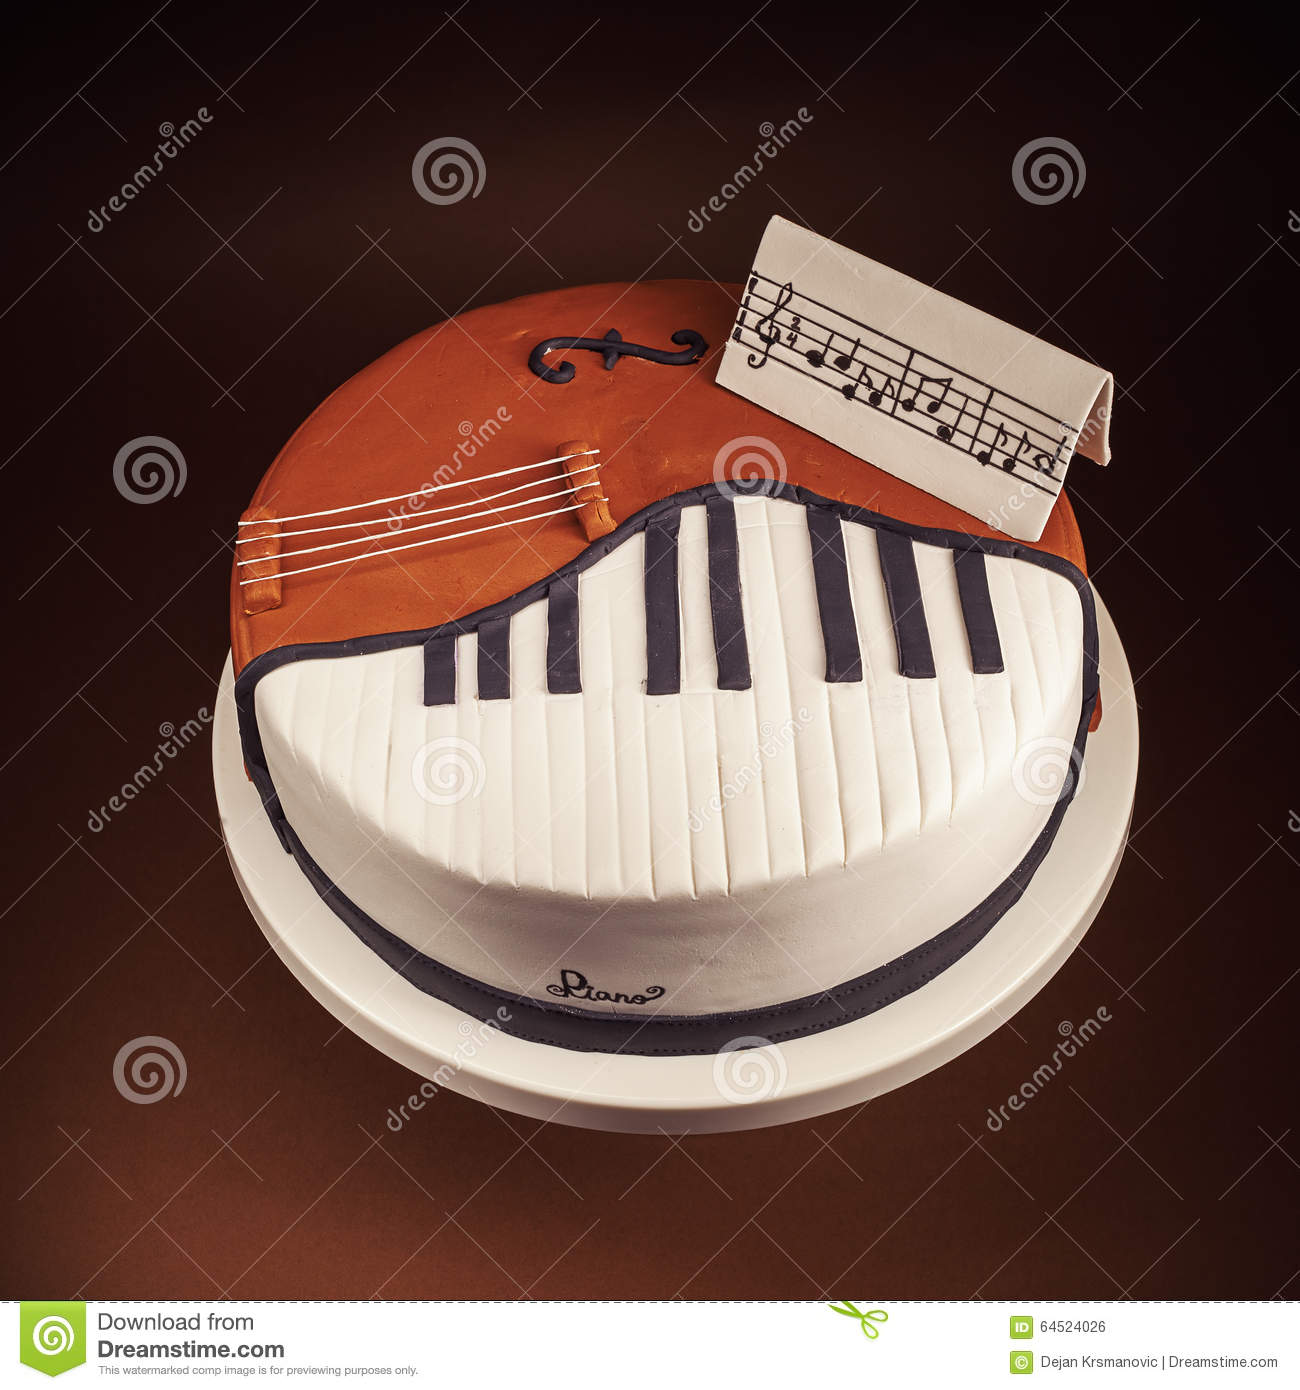 Birthday Cake Decorated With Fondant Rounded Symbolically Presenting Piano And Cello Instruments